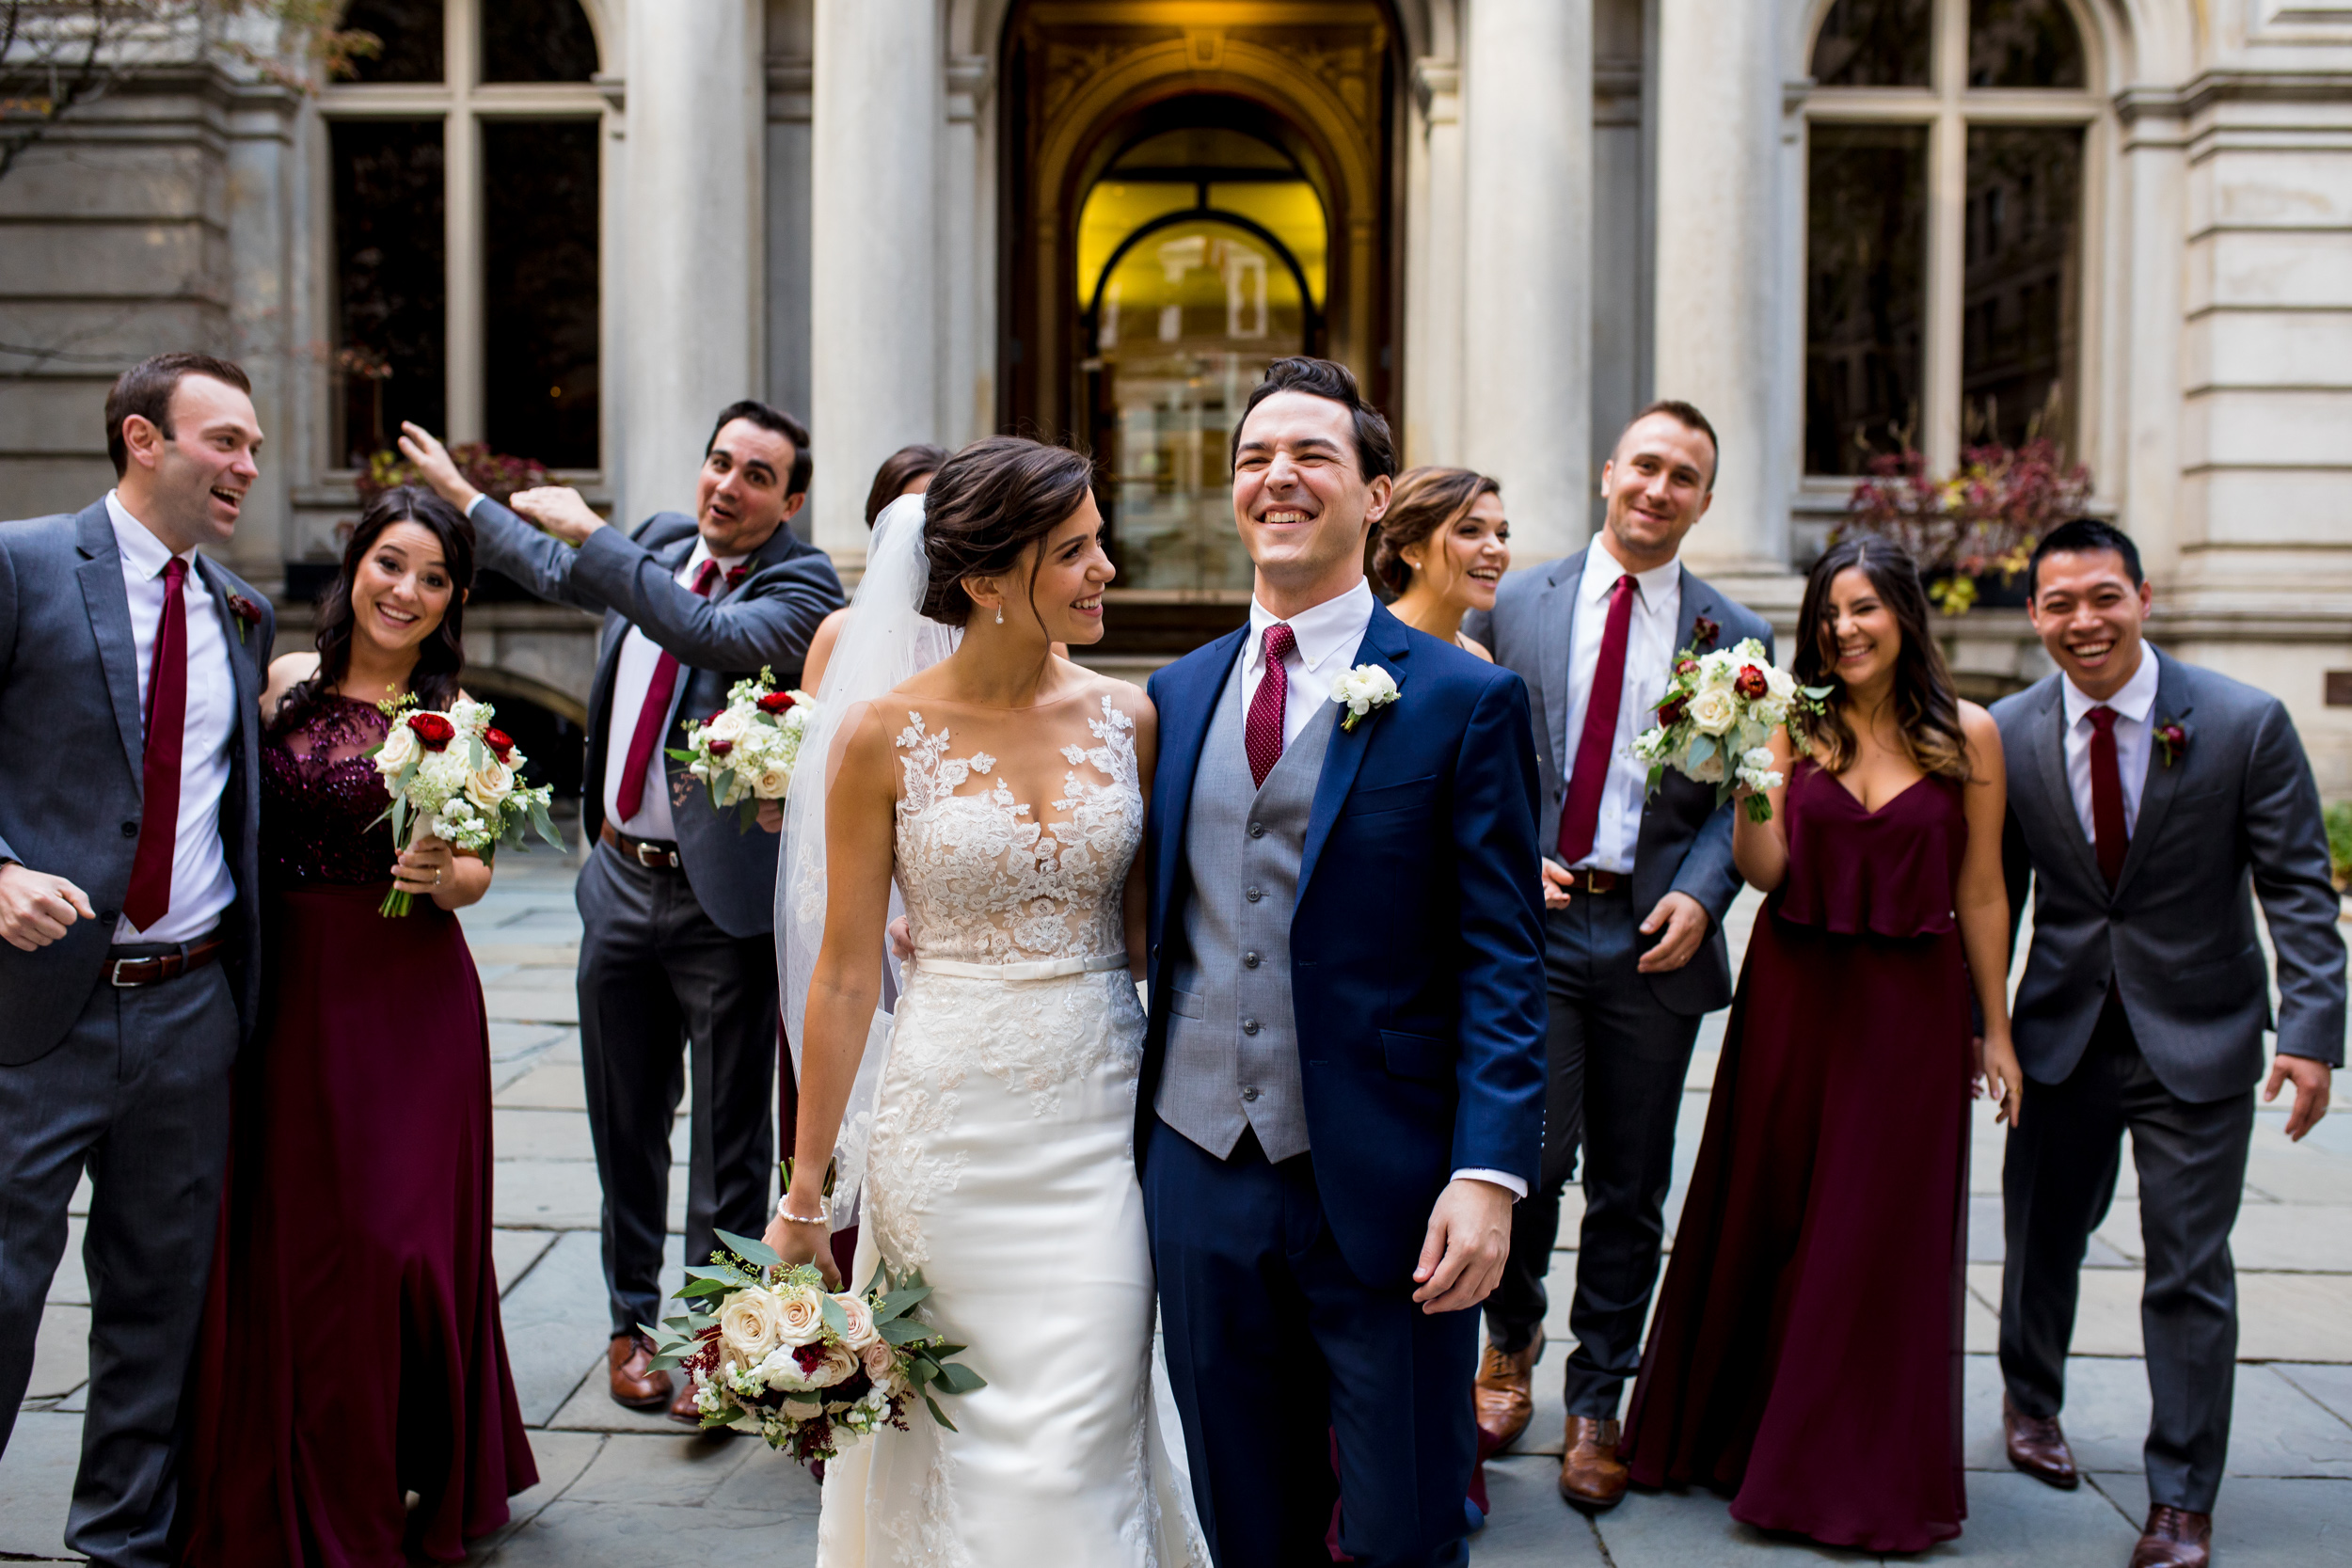 redwood and rye_omni parker house wedding photography_boston wedding photographer-54.jpg